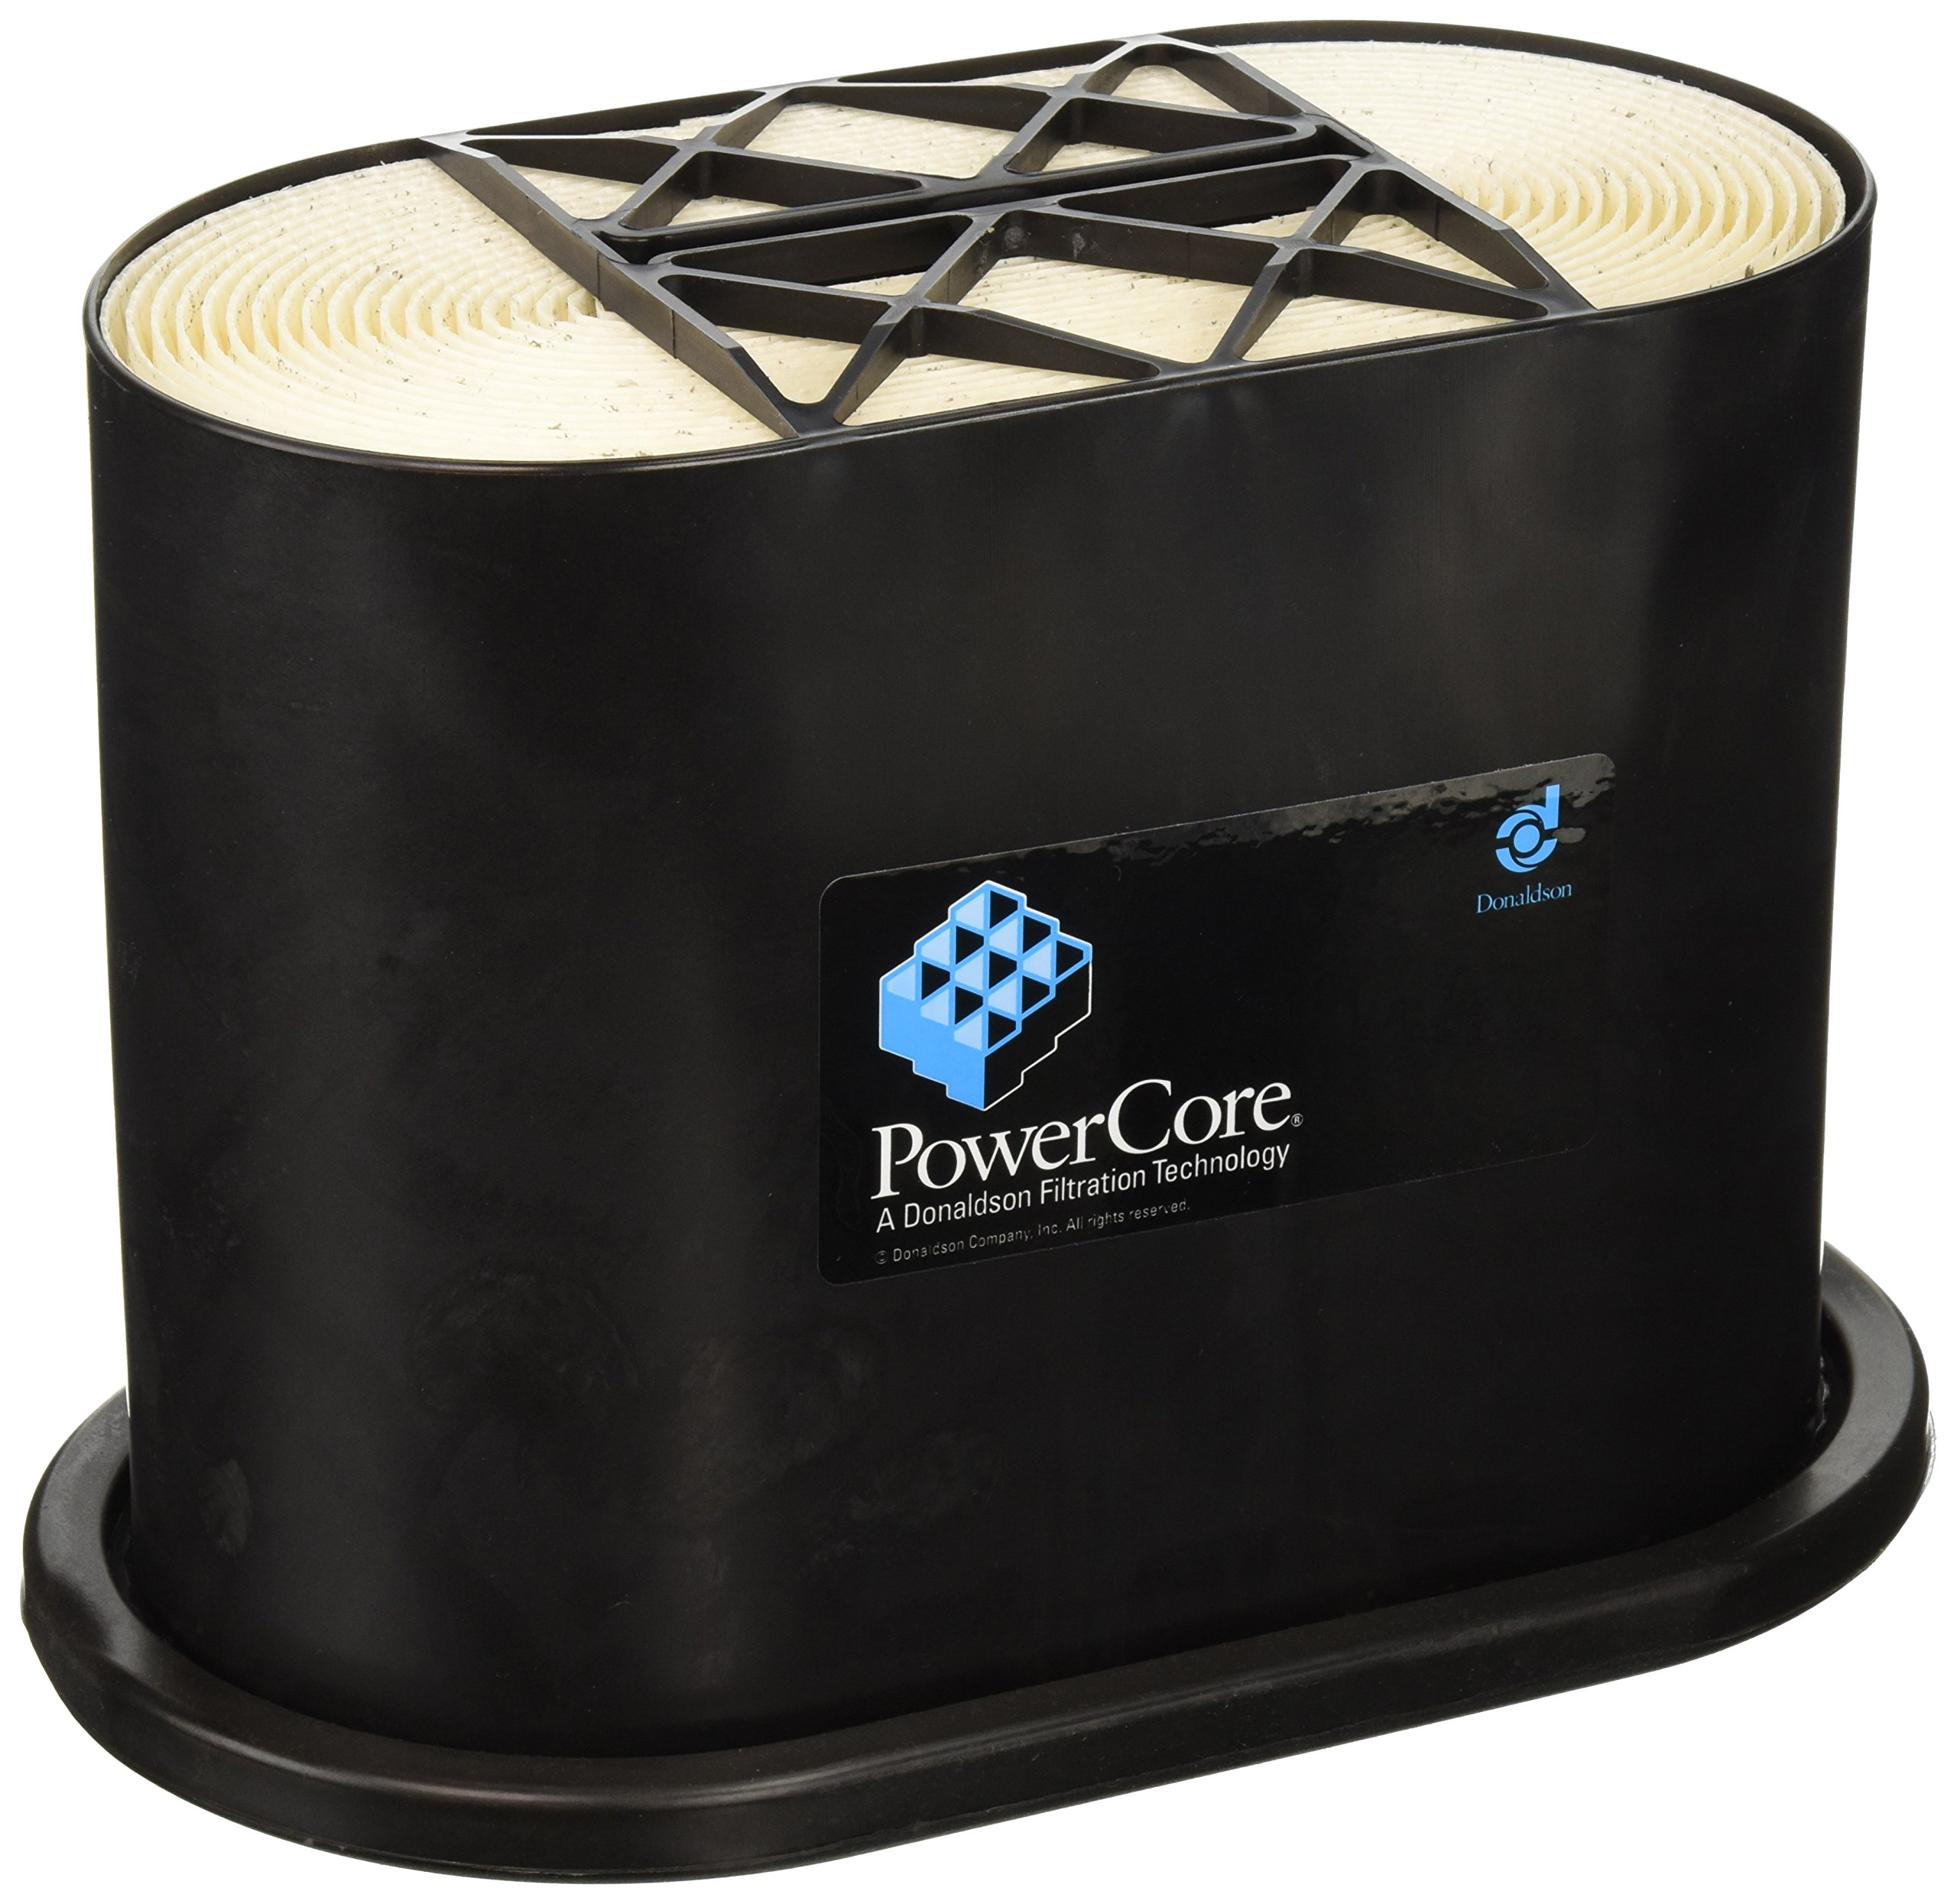 Luber-finer LAF5934 Heavy Duty Air Filter by Luber-finer